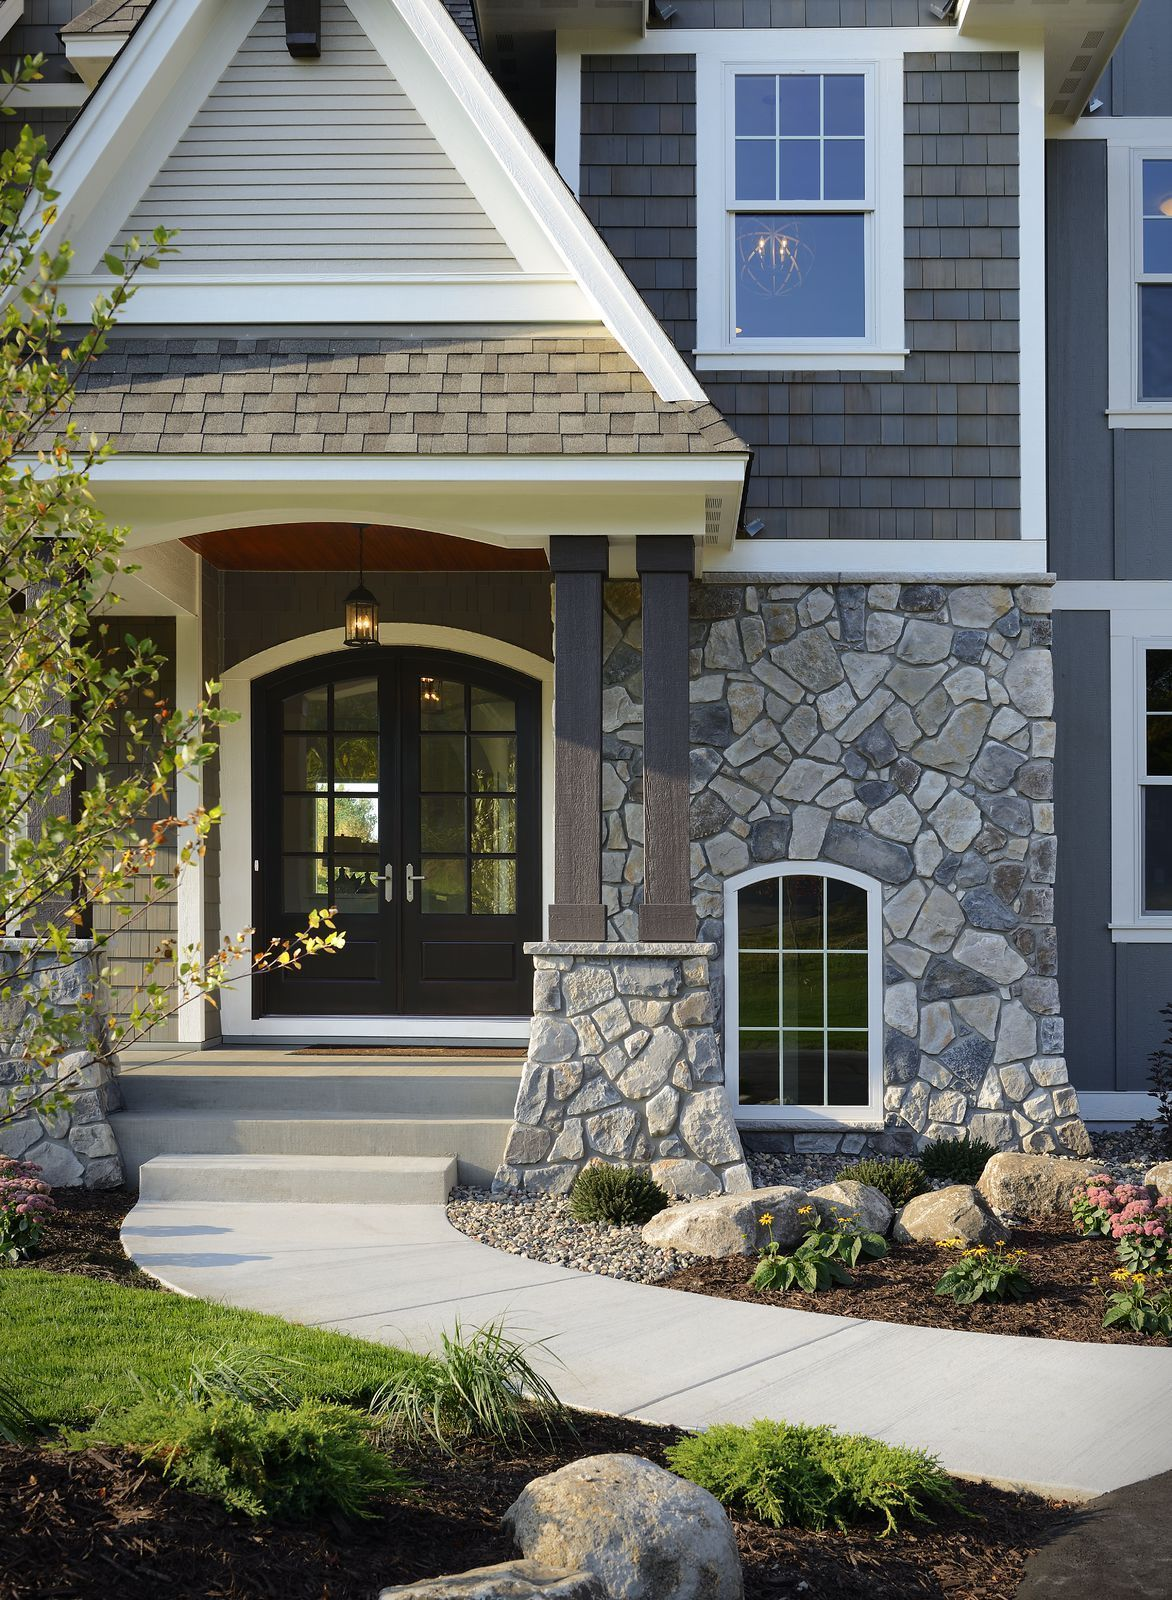 Cultured Stone Dressed Fieldstone Echo Ridge A Traditional Style Cottage Home With Echo Ridge Stone Exterior Houses Exterior House Colors Exterior Design